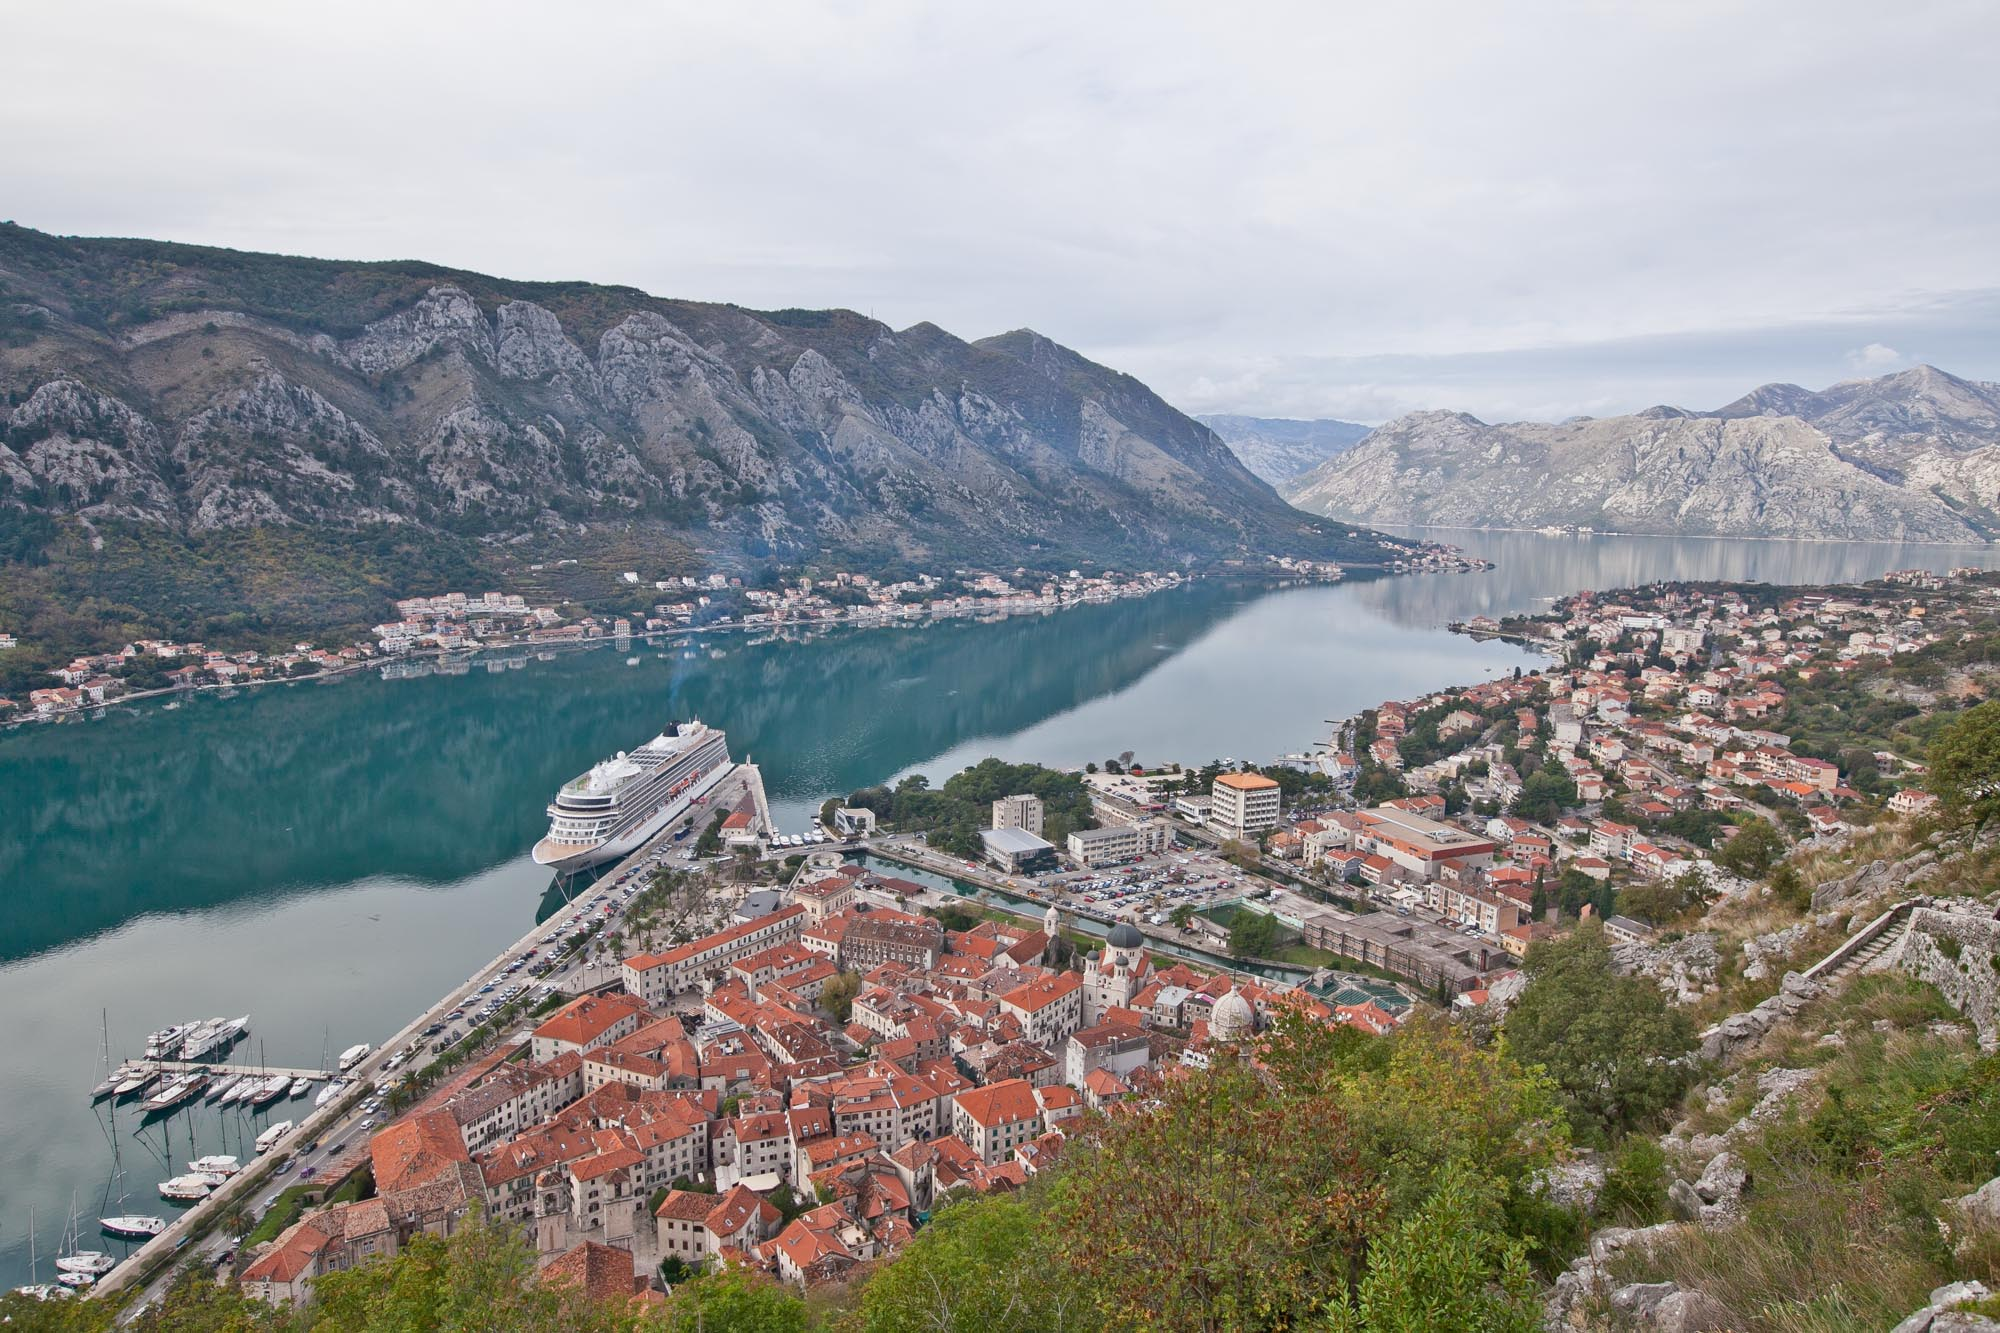 Kotor overlook